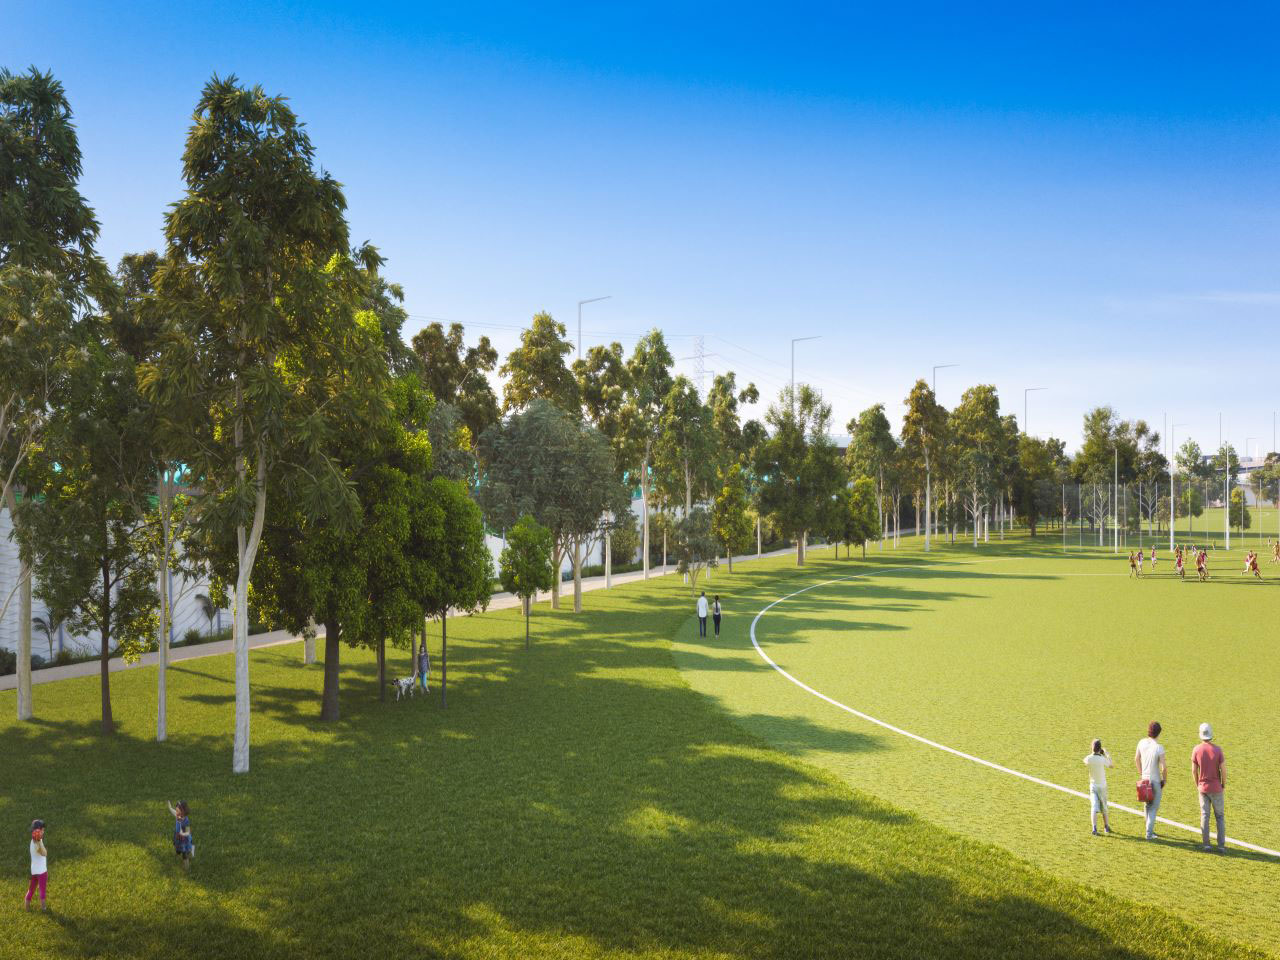 The revitalised Don McLean Reserve, Spotswood. Artist impression only - does not include detailed design.